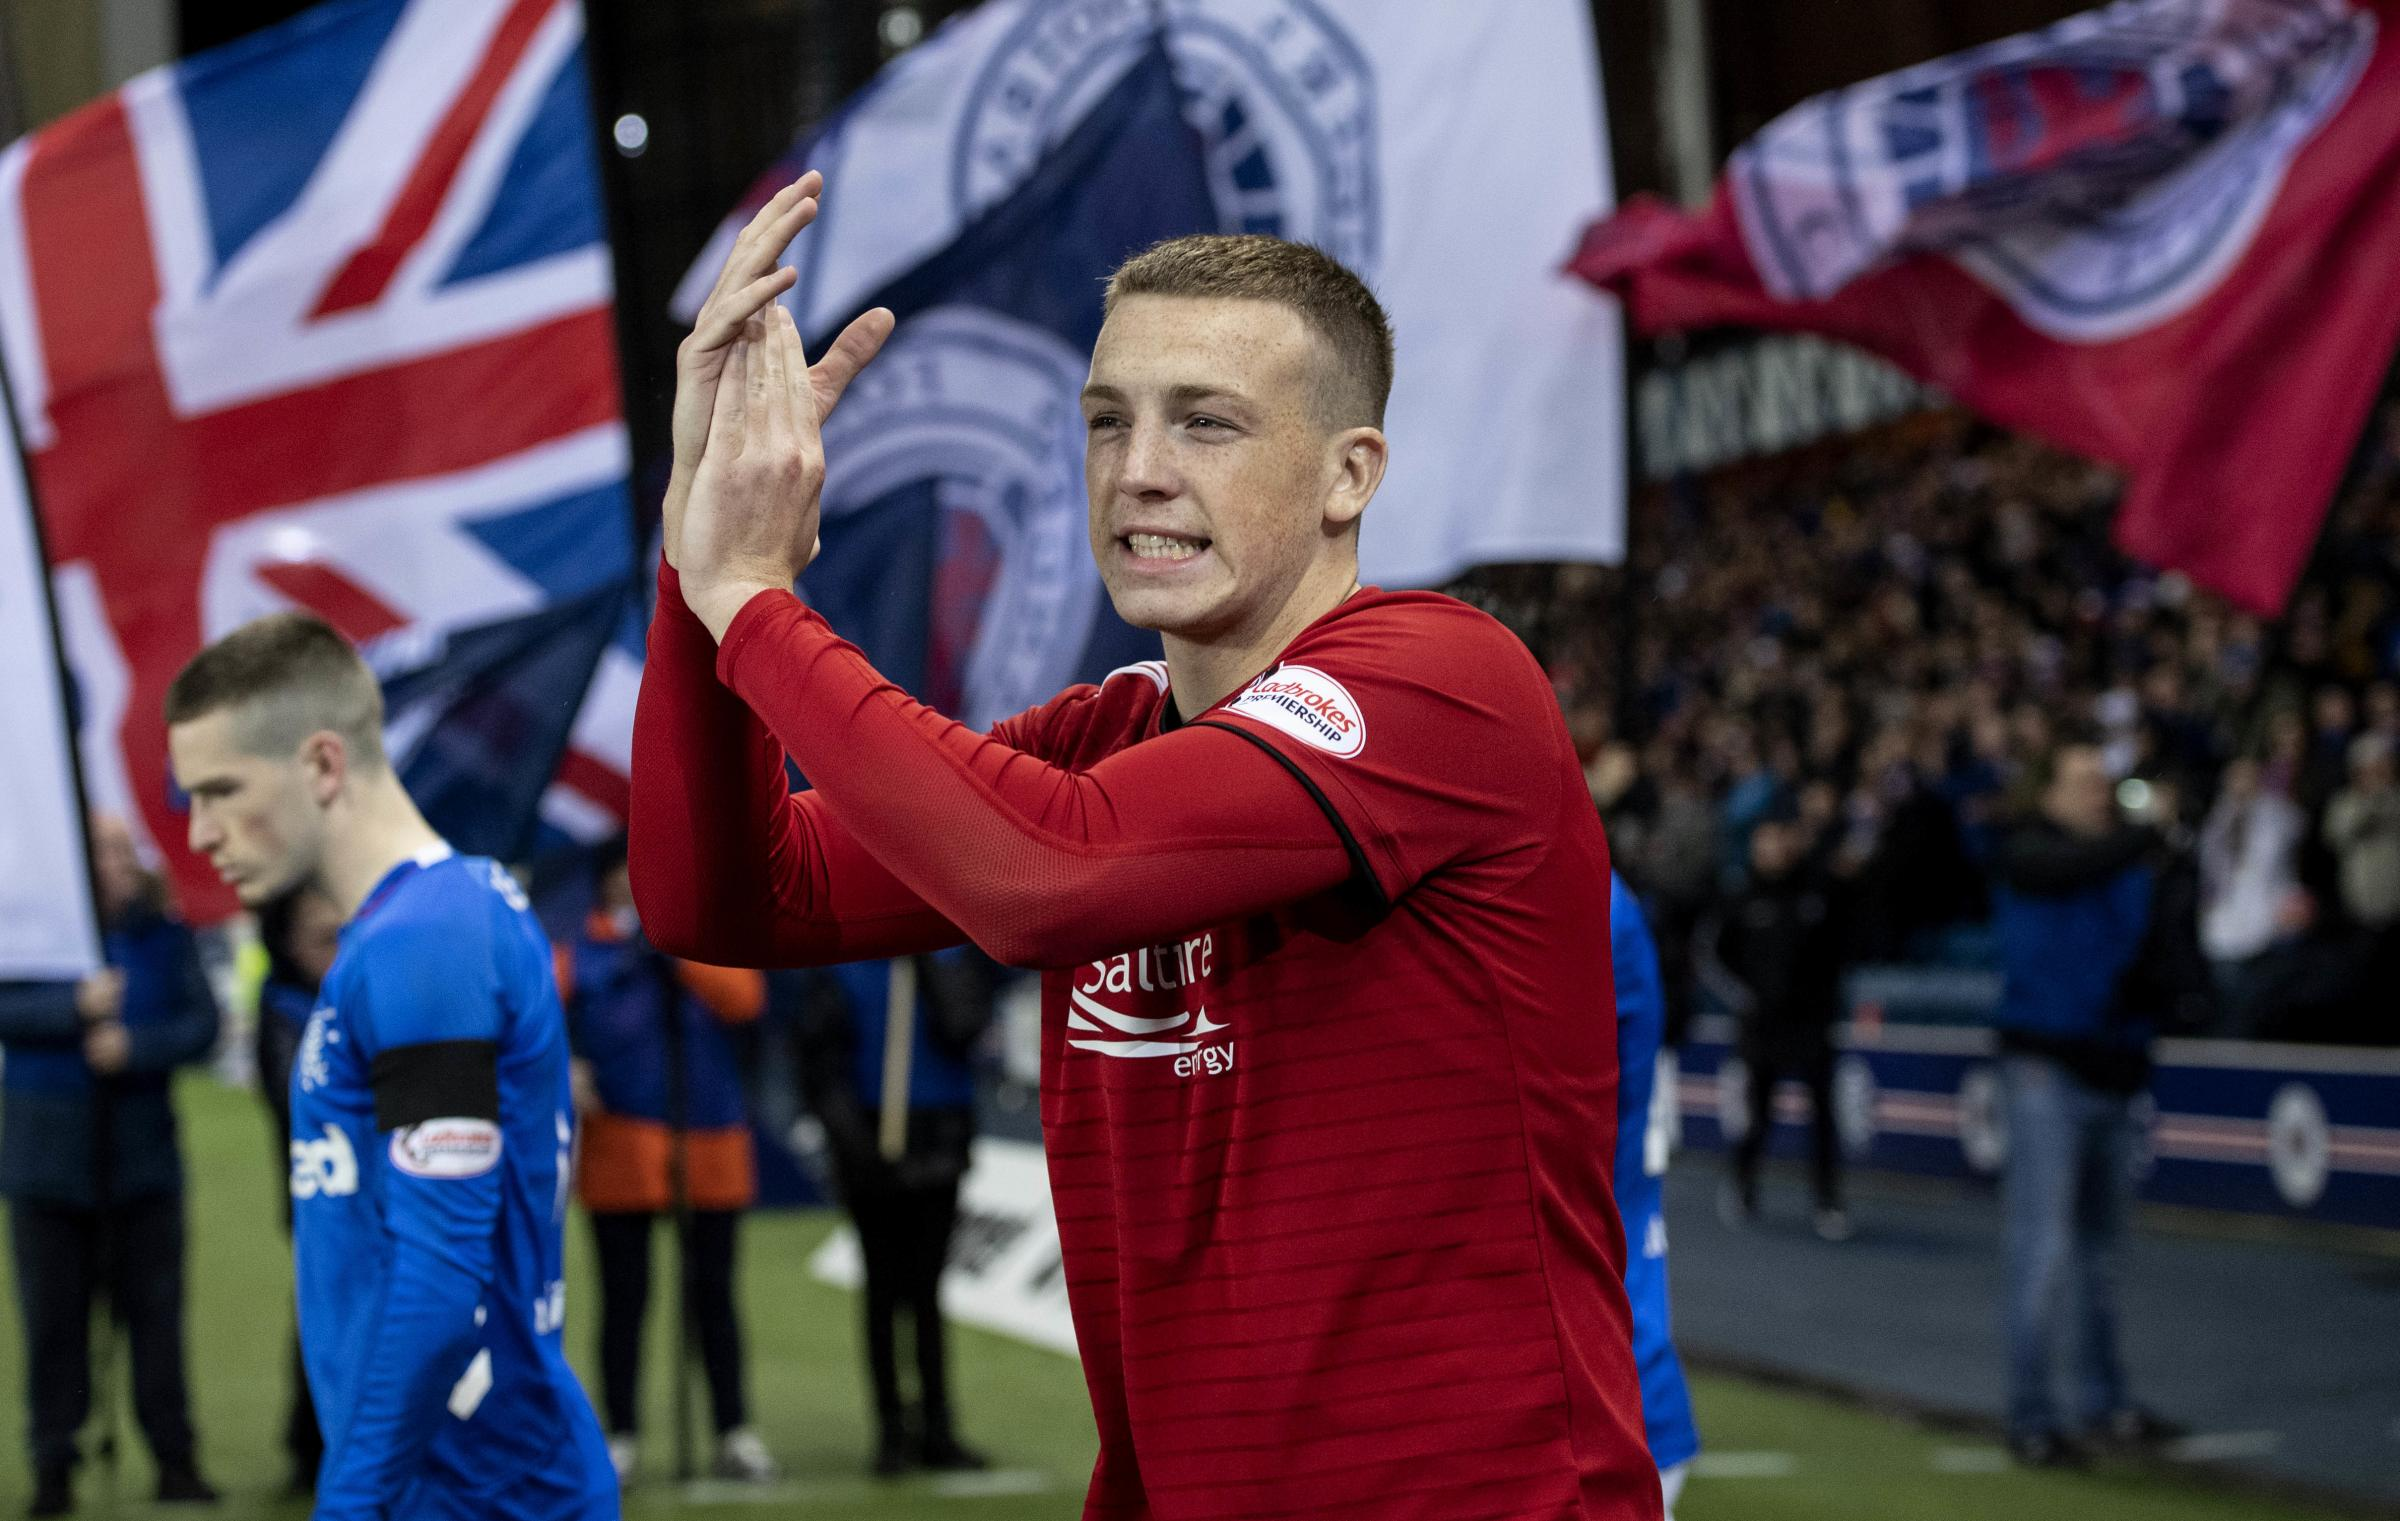 Aberdeen's Lewis Ferguson applauds the fans as he walks onto the pitch